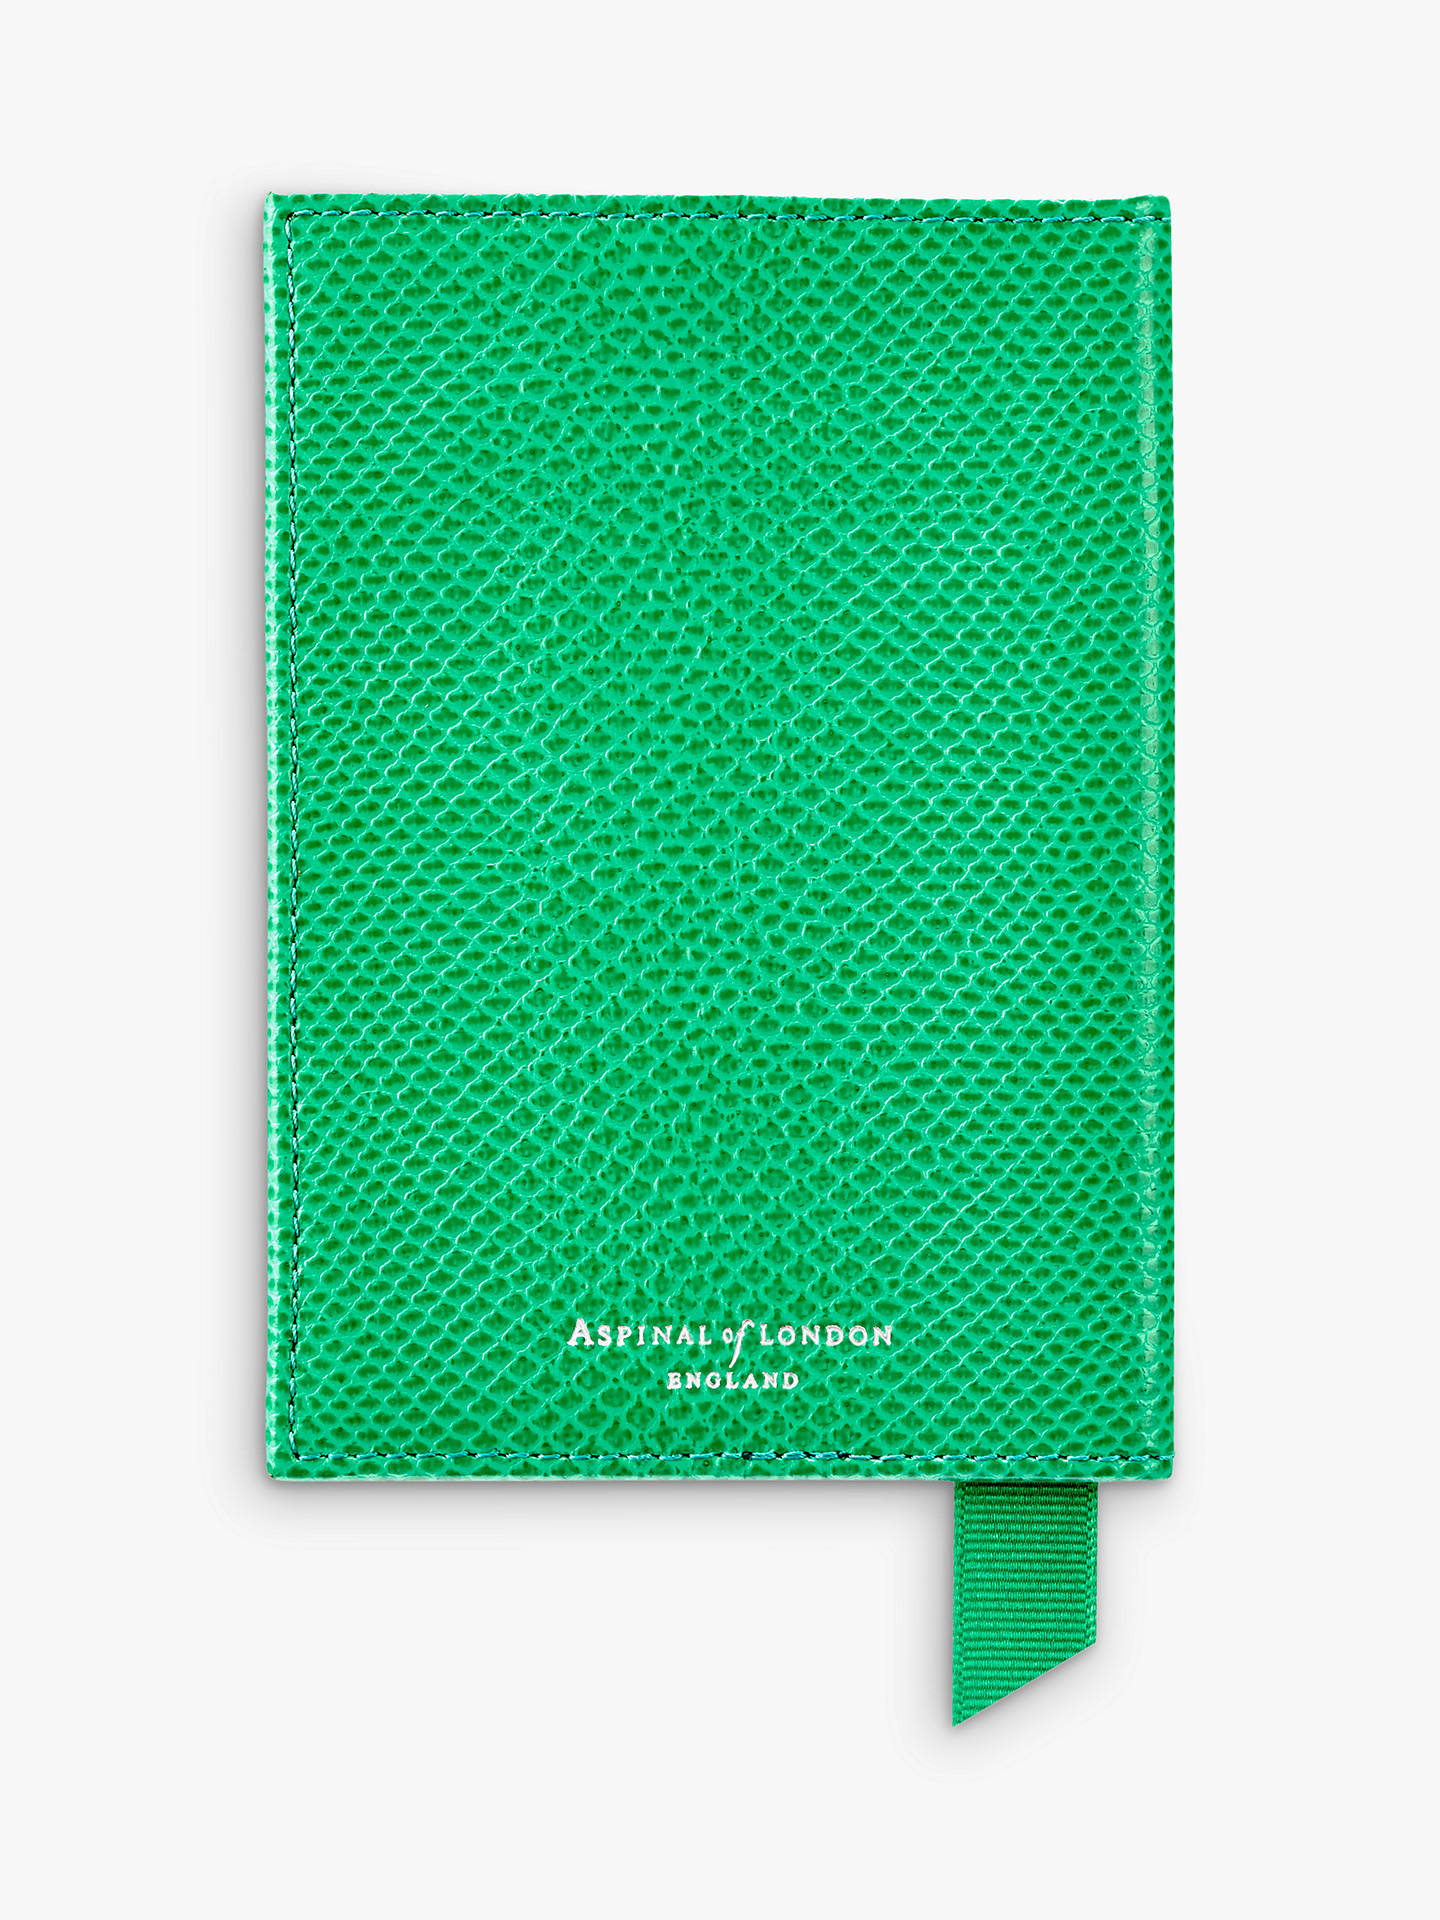 Buy Aspinal of London Leather Passport Cover, Grass Green Online at johnlewis.com